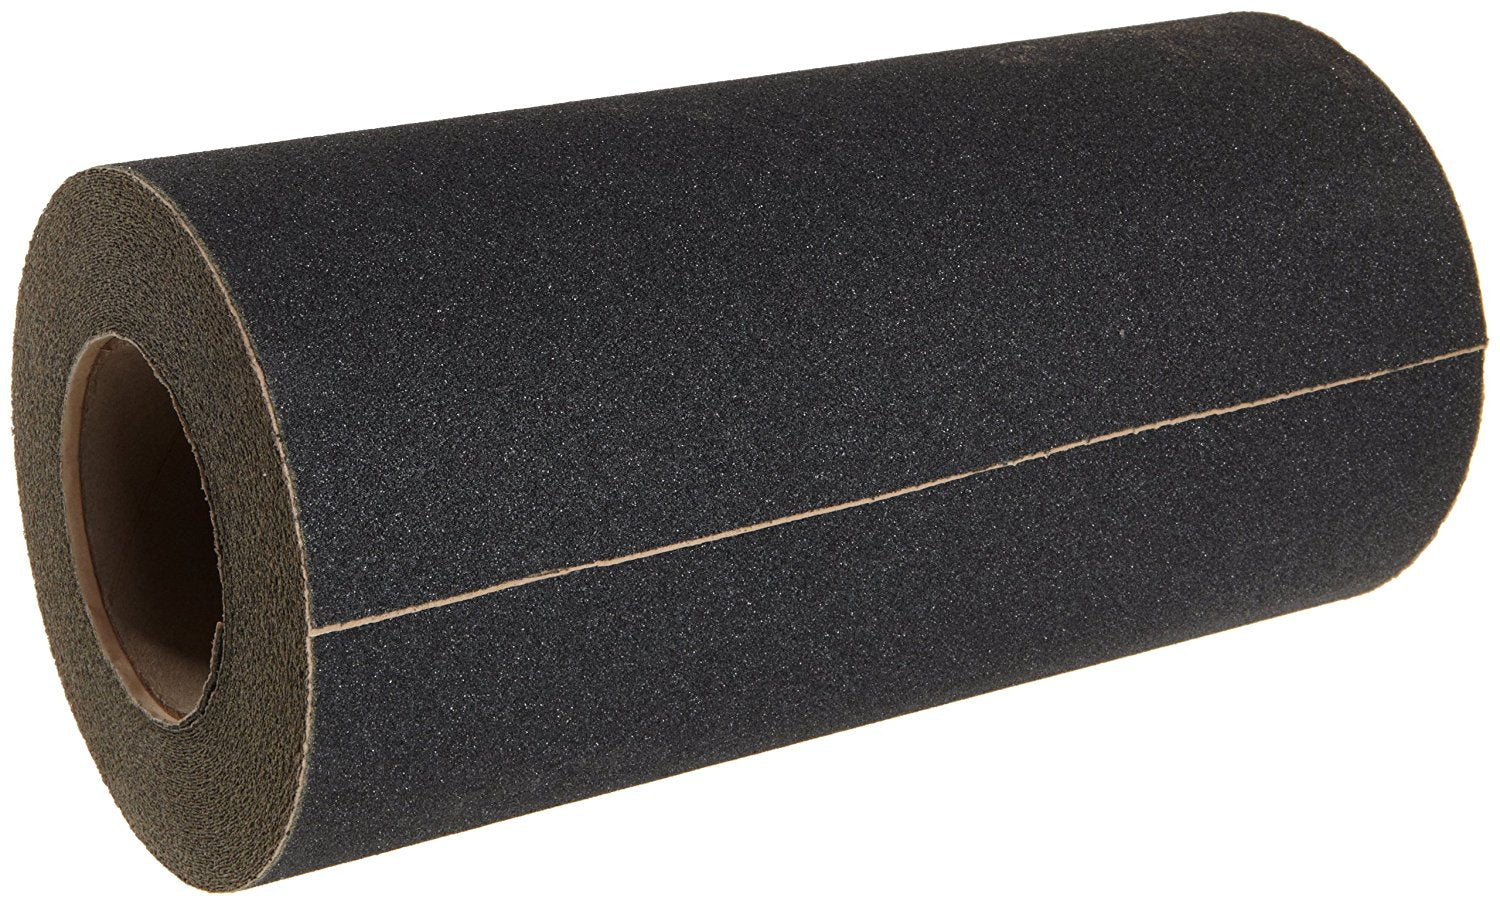 "12"" X 60' Roll Abrasive 80 Grit Non Skid Grip Tape Black"